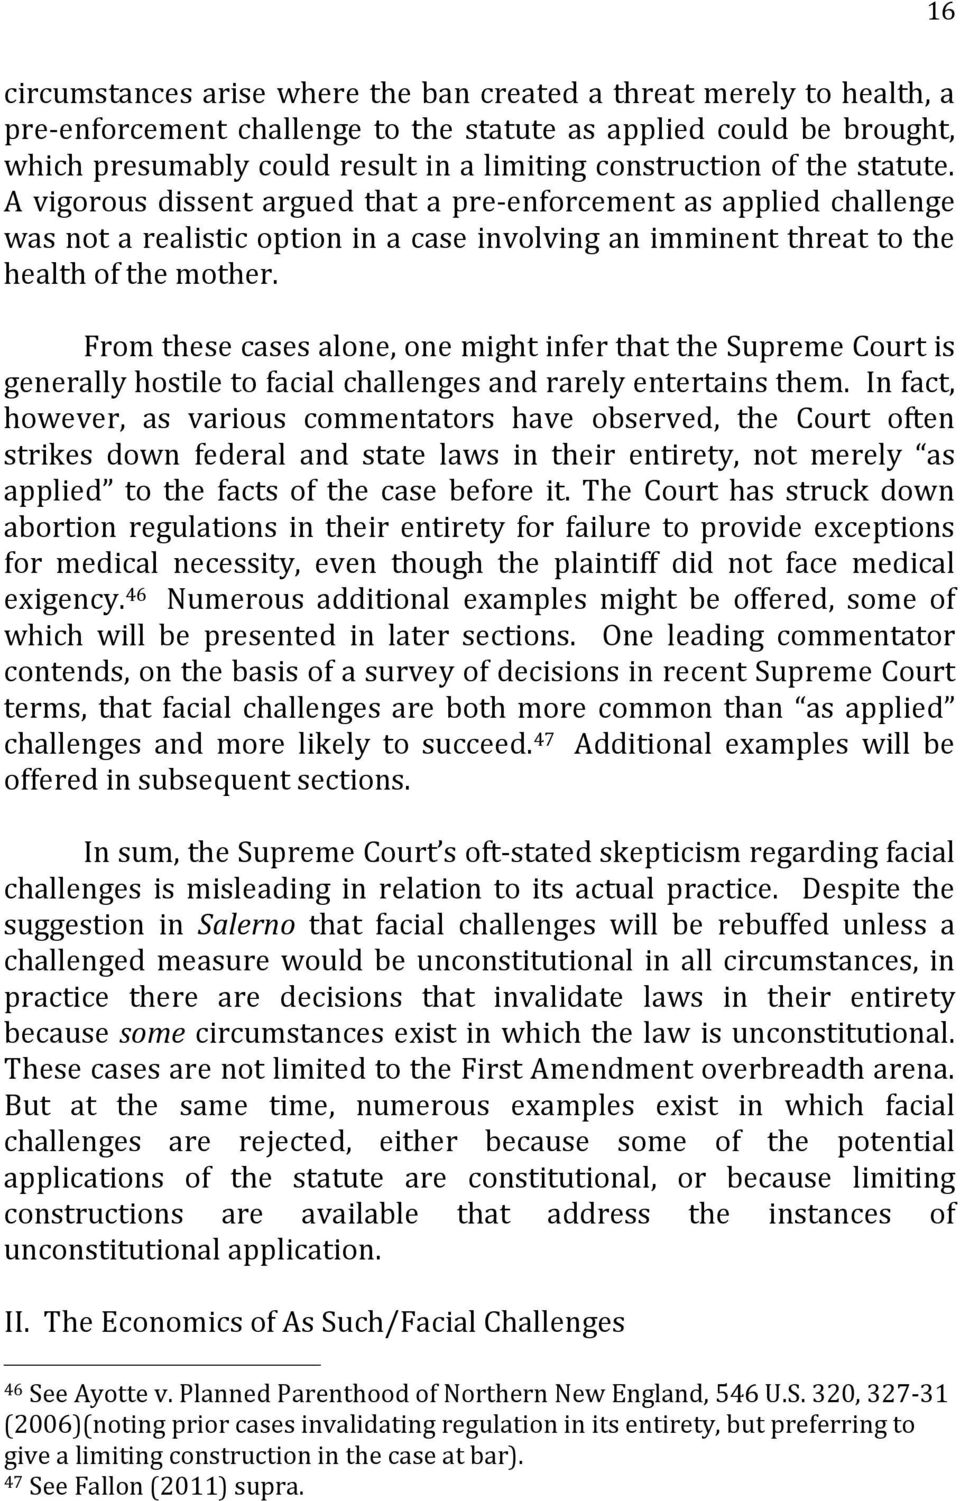 From these cases alone, one might infer that the Supreme Court is generally hostile to facial challenges and rarely entertains them.